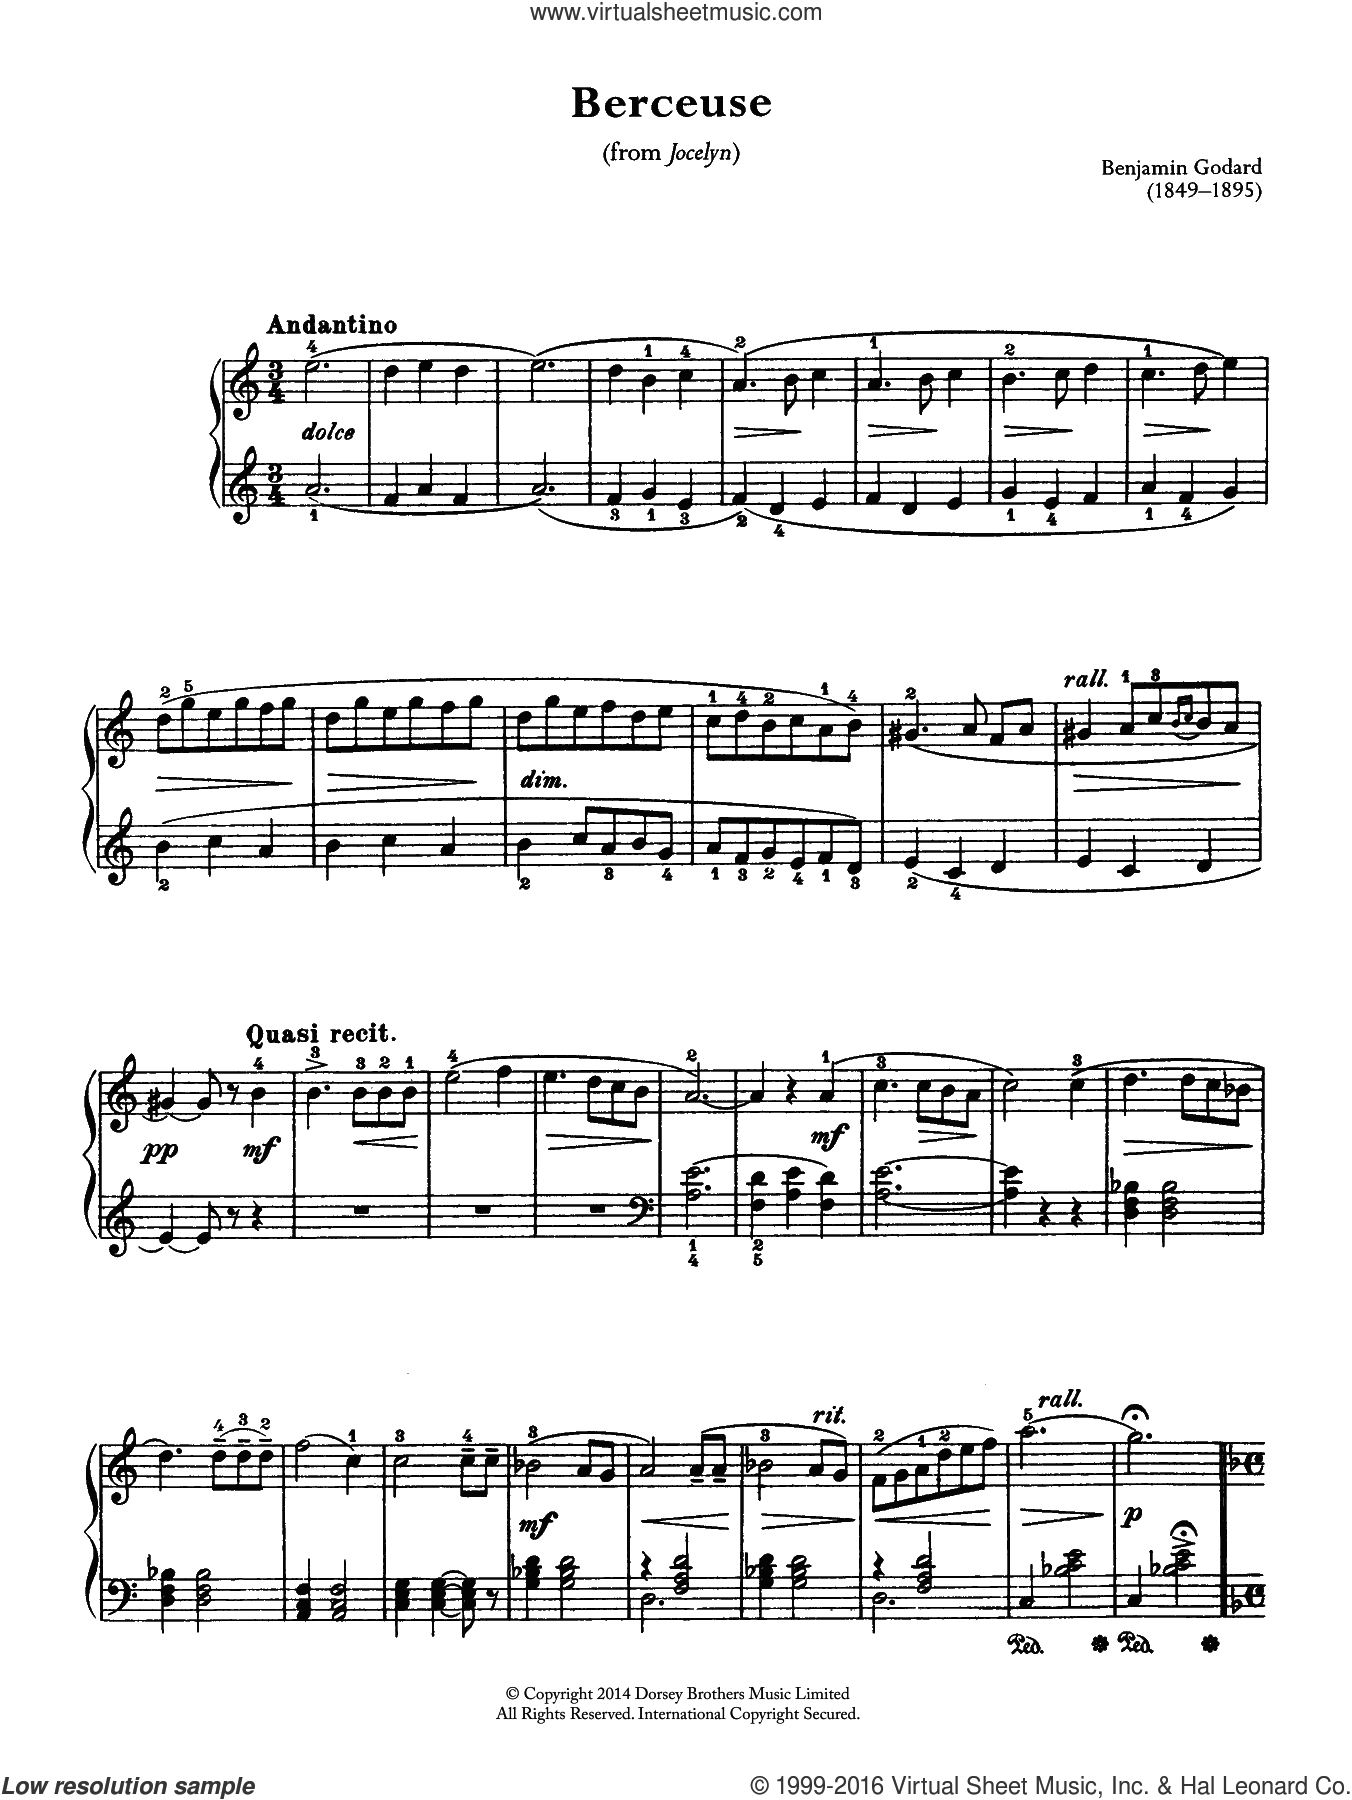 Berceuse (From Jocelyn) sheet music for piano solo by Benjamin Godard. Score Image Preview.